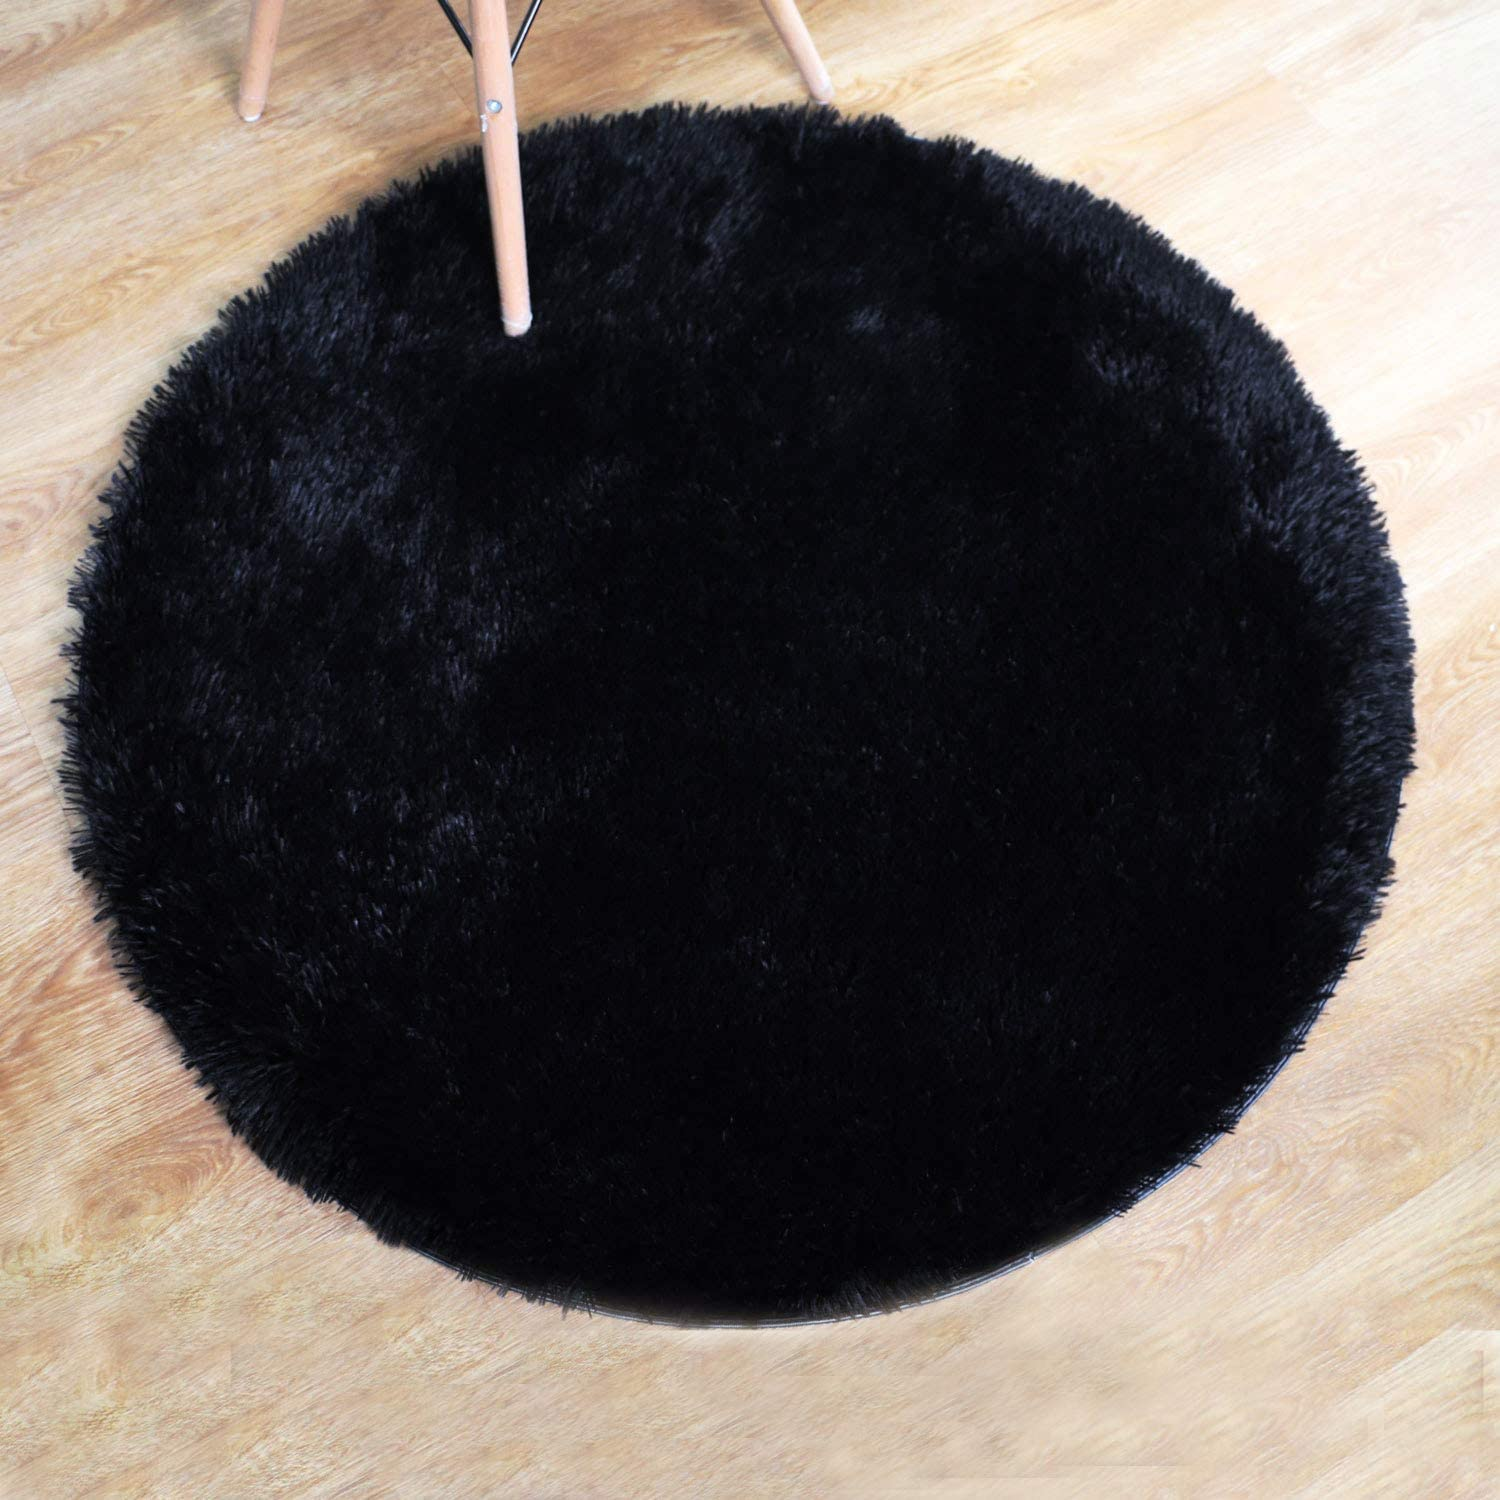 Amazon Com Pagisofe Super Soft Black Fluffy Area Rug Round Rugs For Bedroom Kids Room Decor Small Cute Circle Floor Carpets For Living Room Fur Mat 3 4 Feet Black Home Kitchen